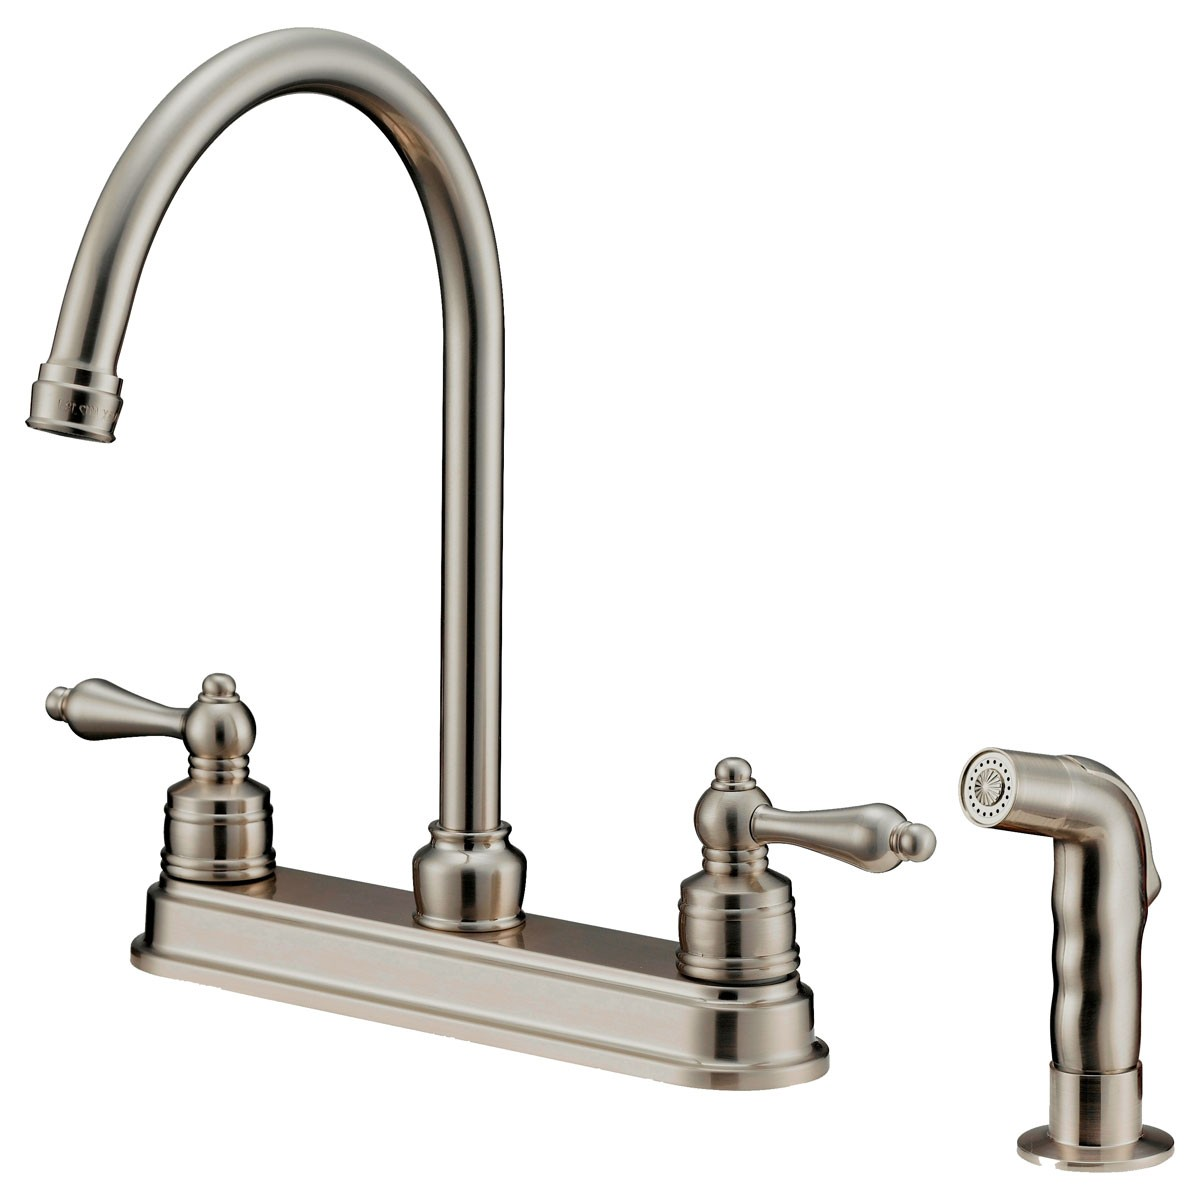 LK8B KITCHEN FAUCET WITH SHOWER SPRAYER, BRUSHED NICKEL - Cabinet ...